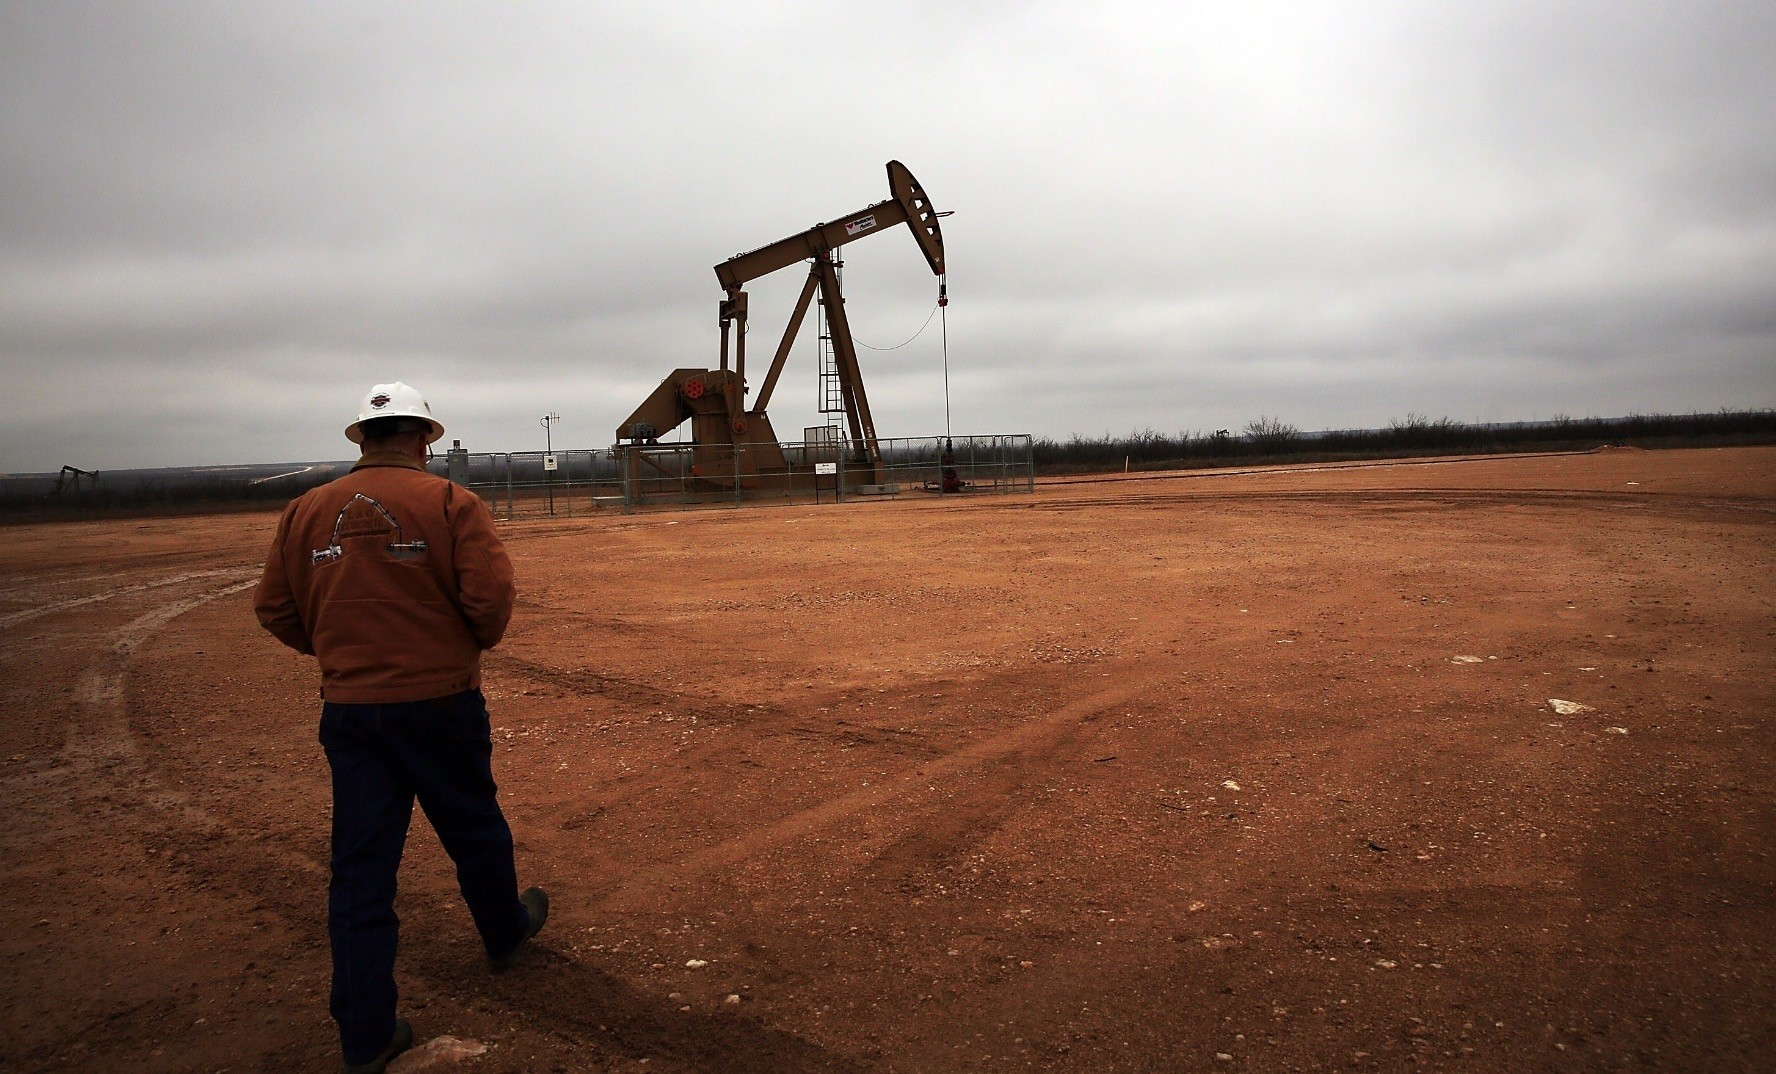 An oil well owned and operated by the Apache Corporation in the Permian Basin, U.S.